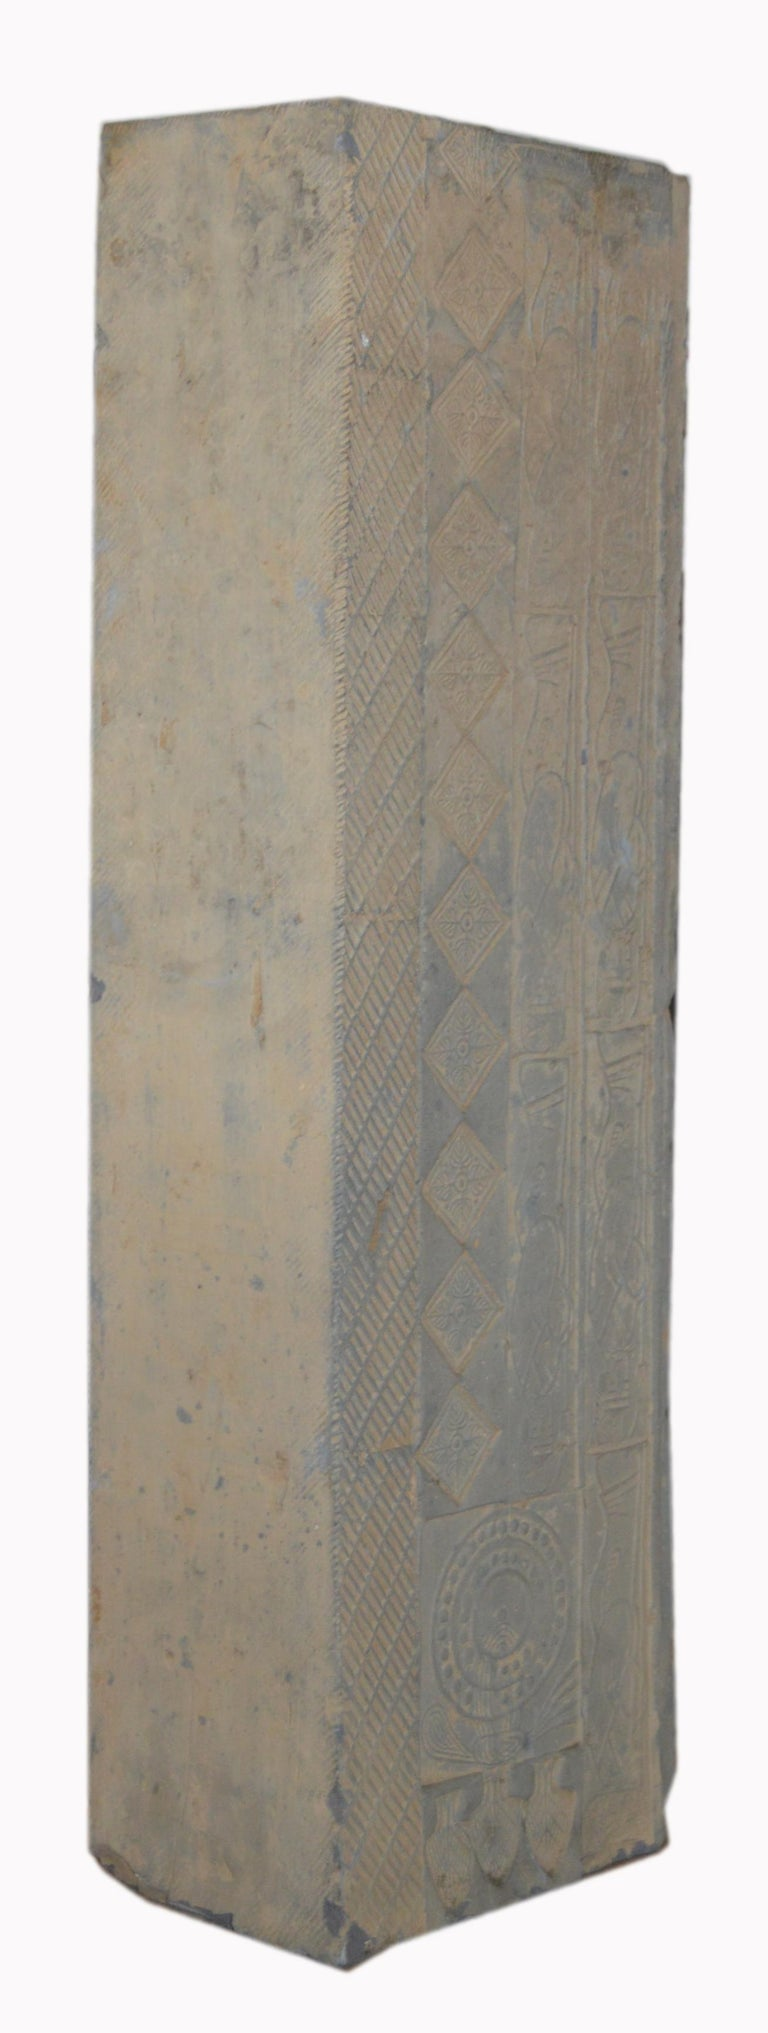 19th Century Tall Chinese Hand-Carved Stone Temple Decoration Pedestal Planter For Sale 3